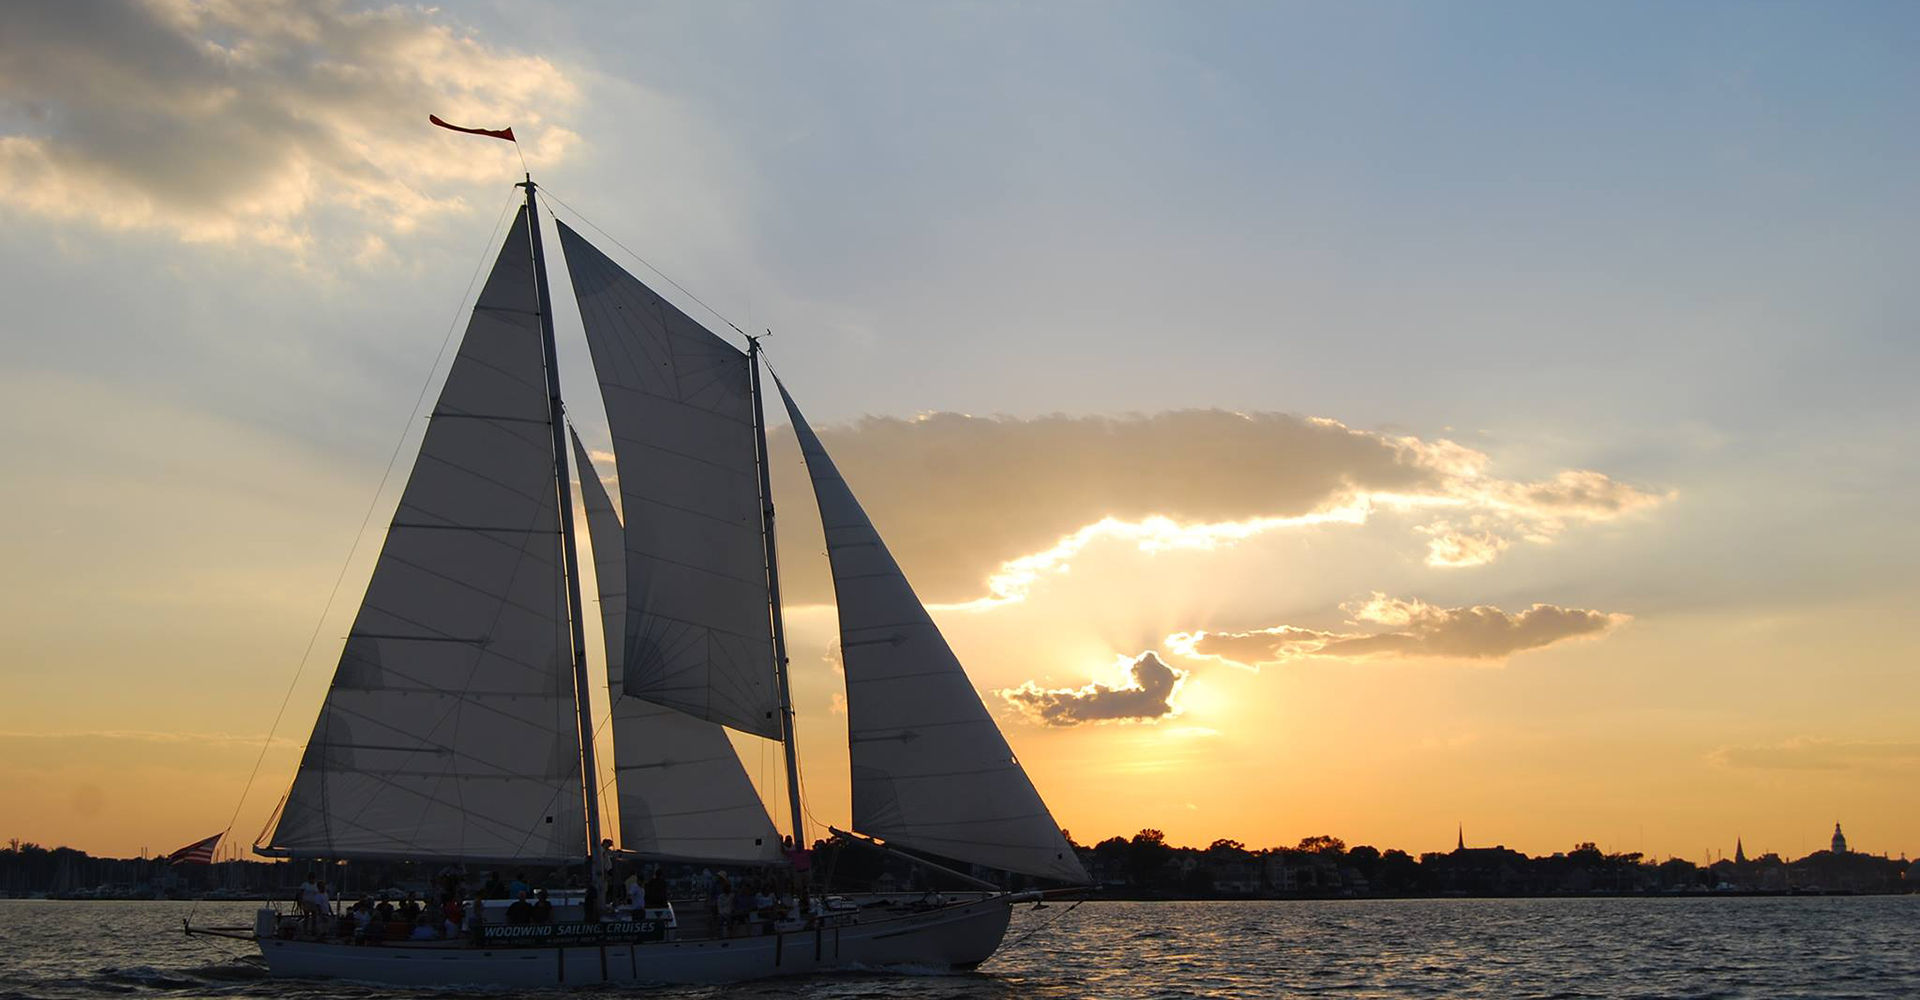 Schooner sailing with skyline and sunset over dark waters